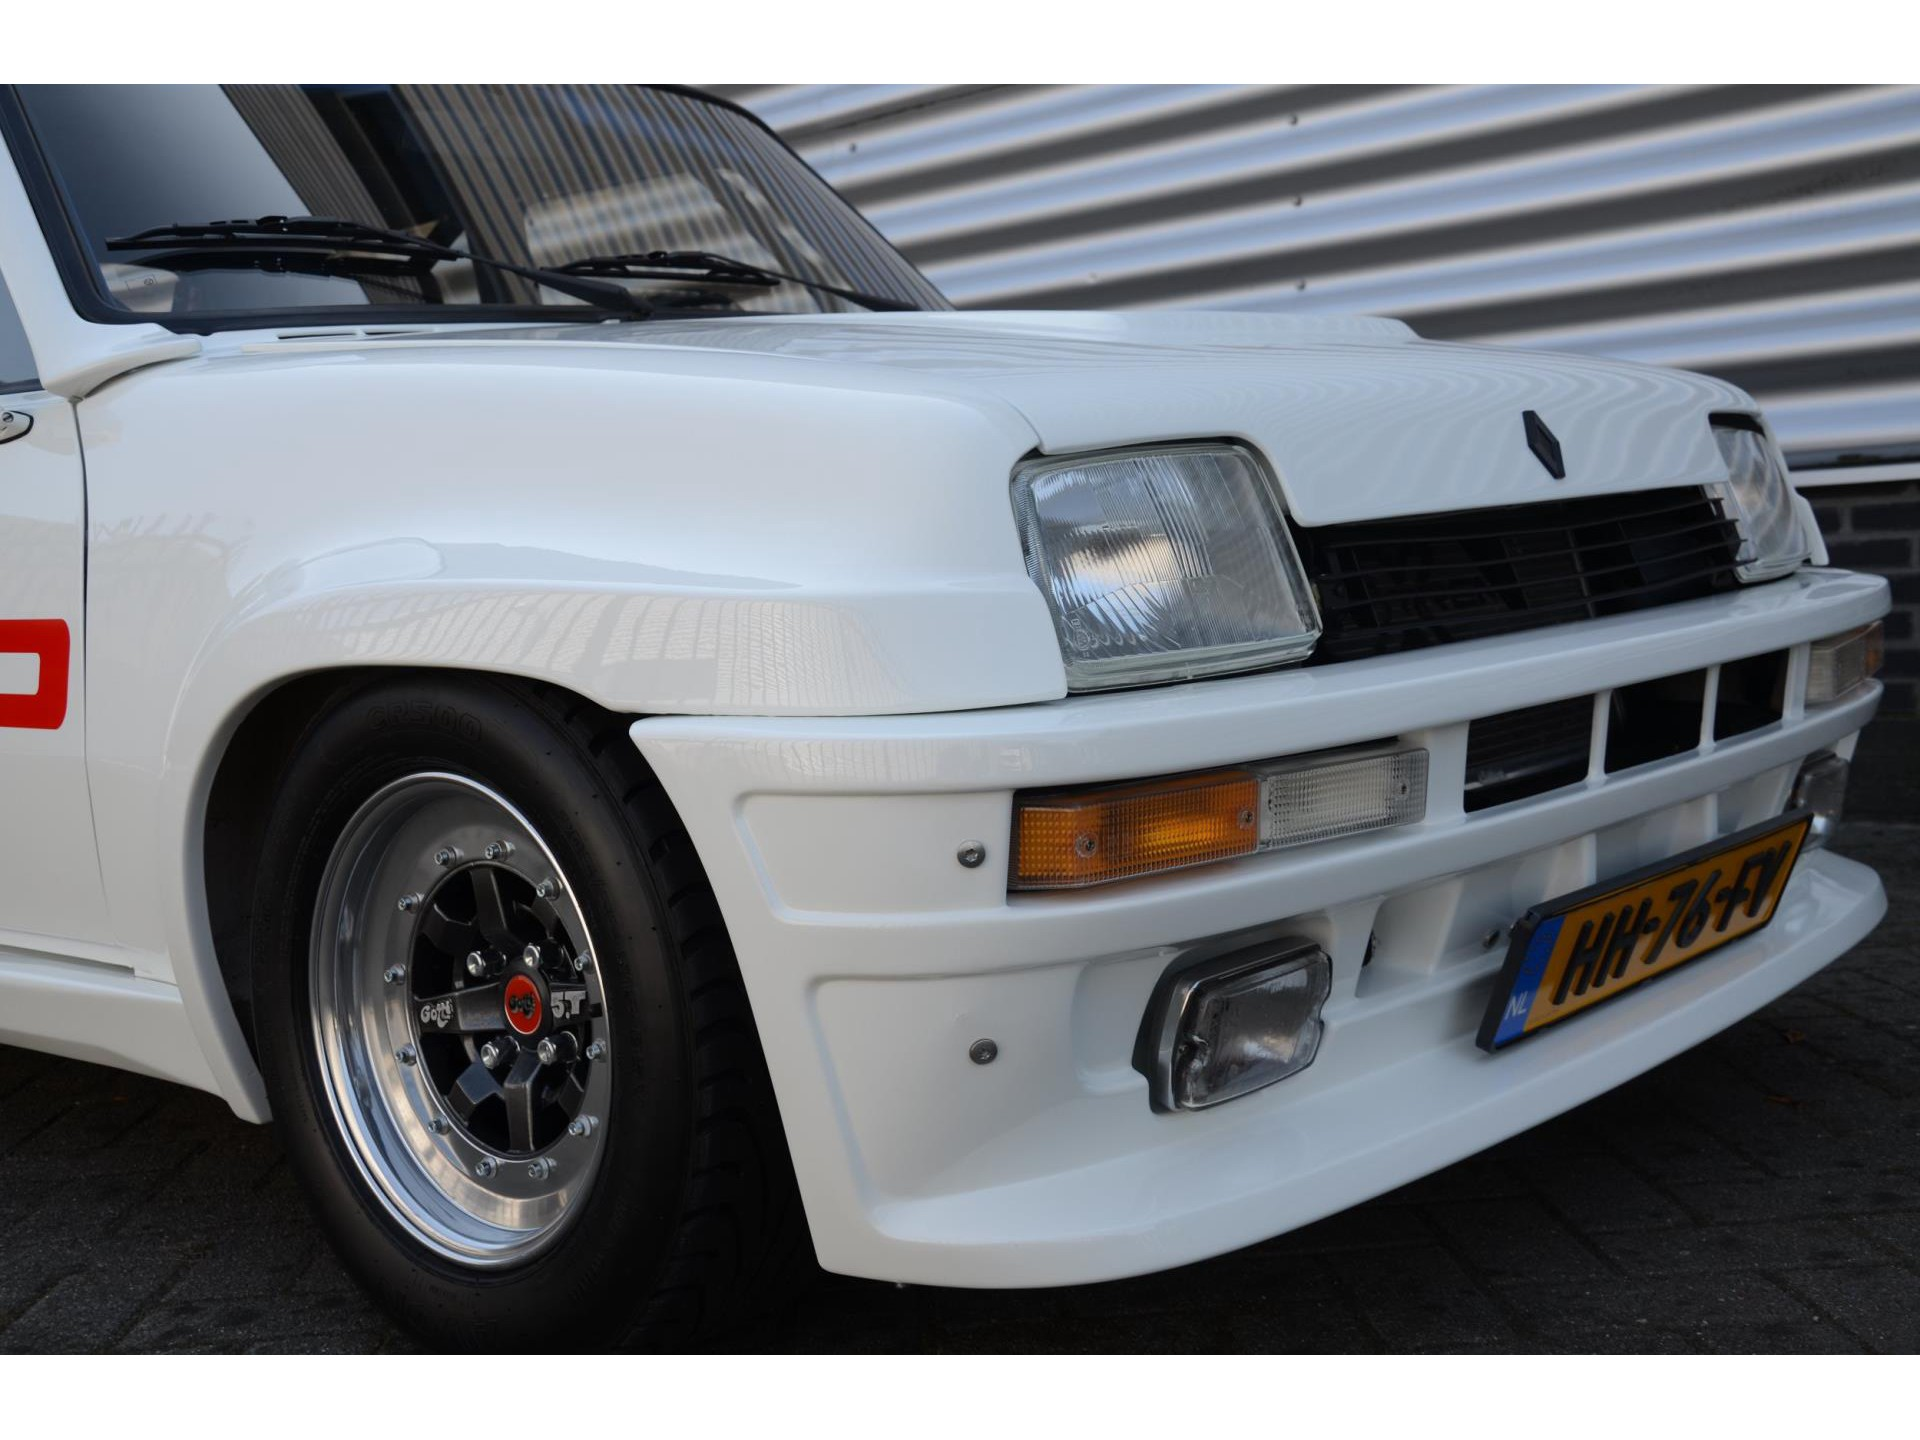 Renault-5-Turbo-Series-1-for-sale-55